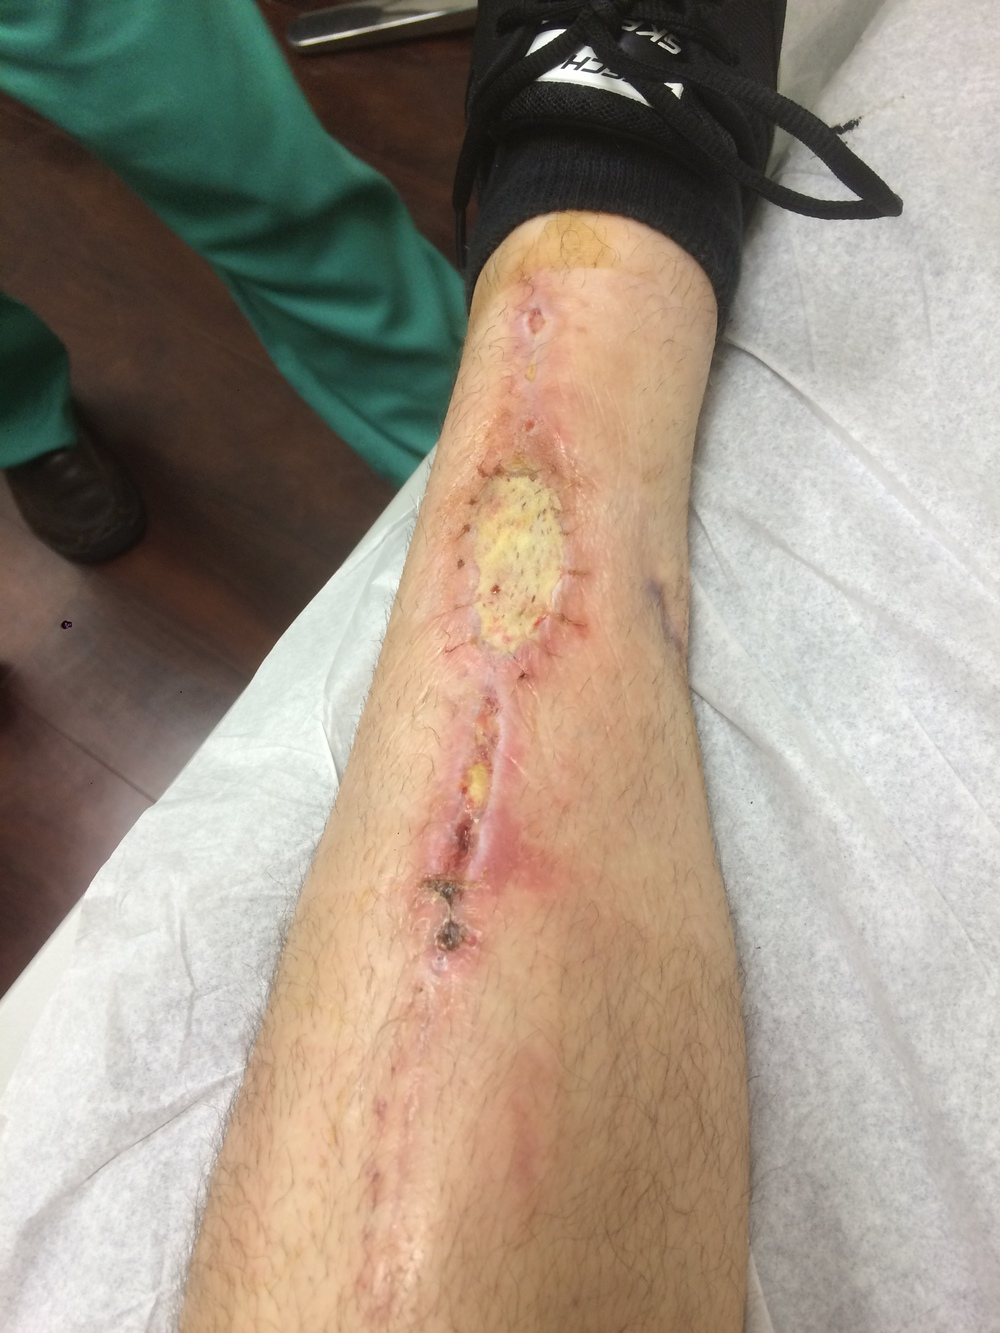 Incision site after skin graft.